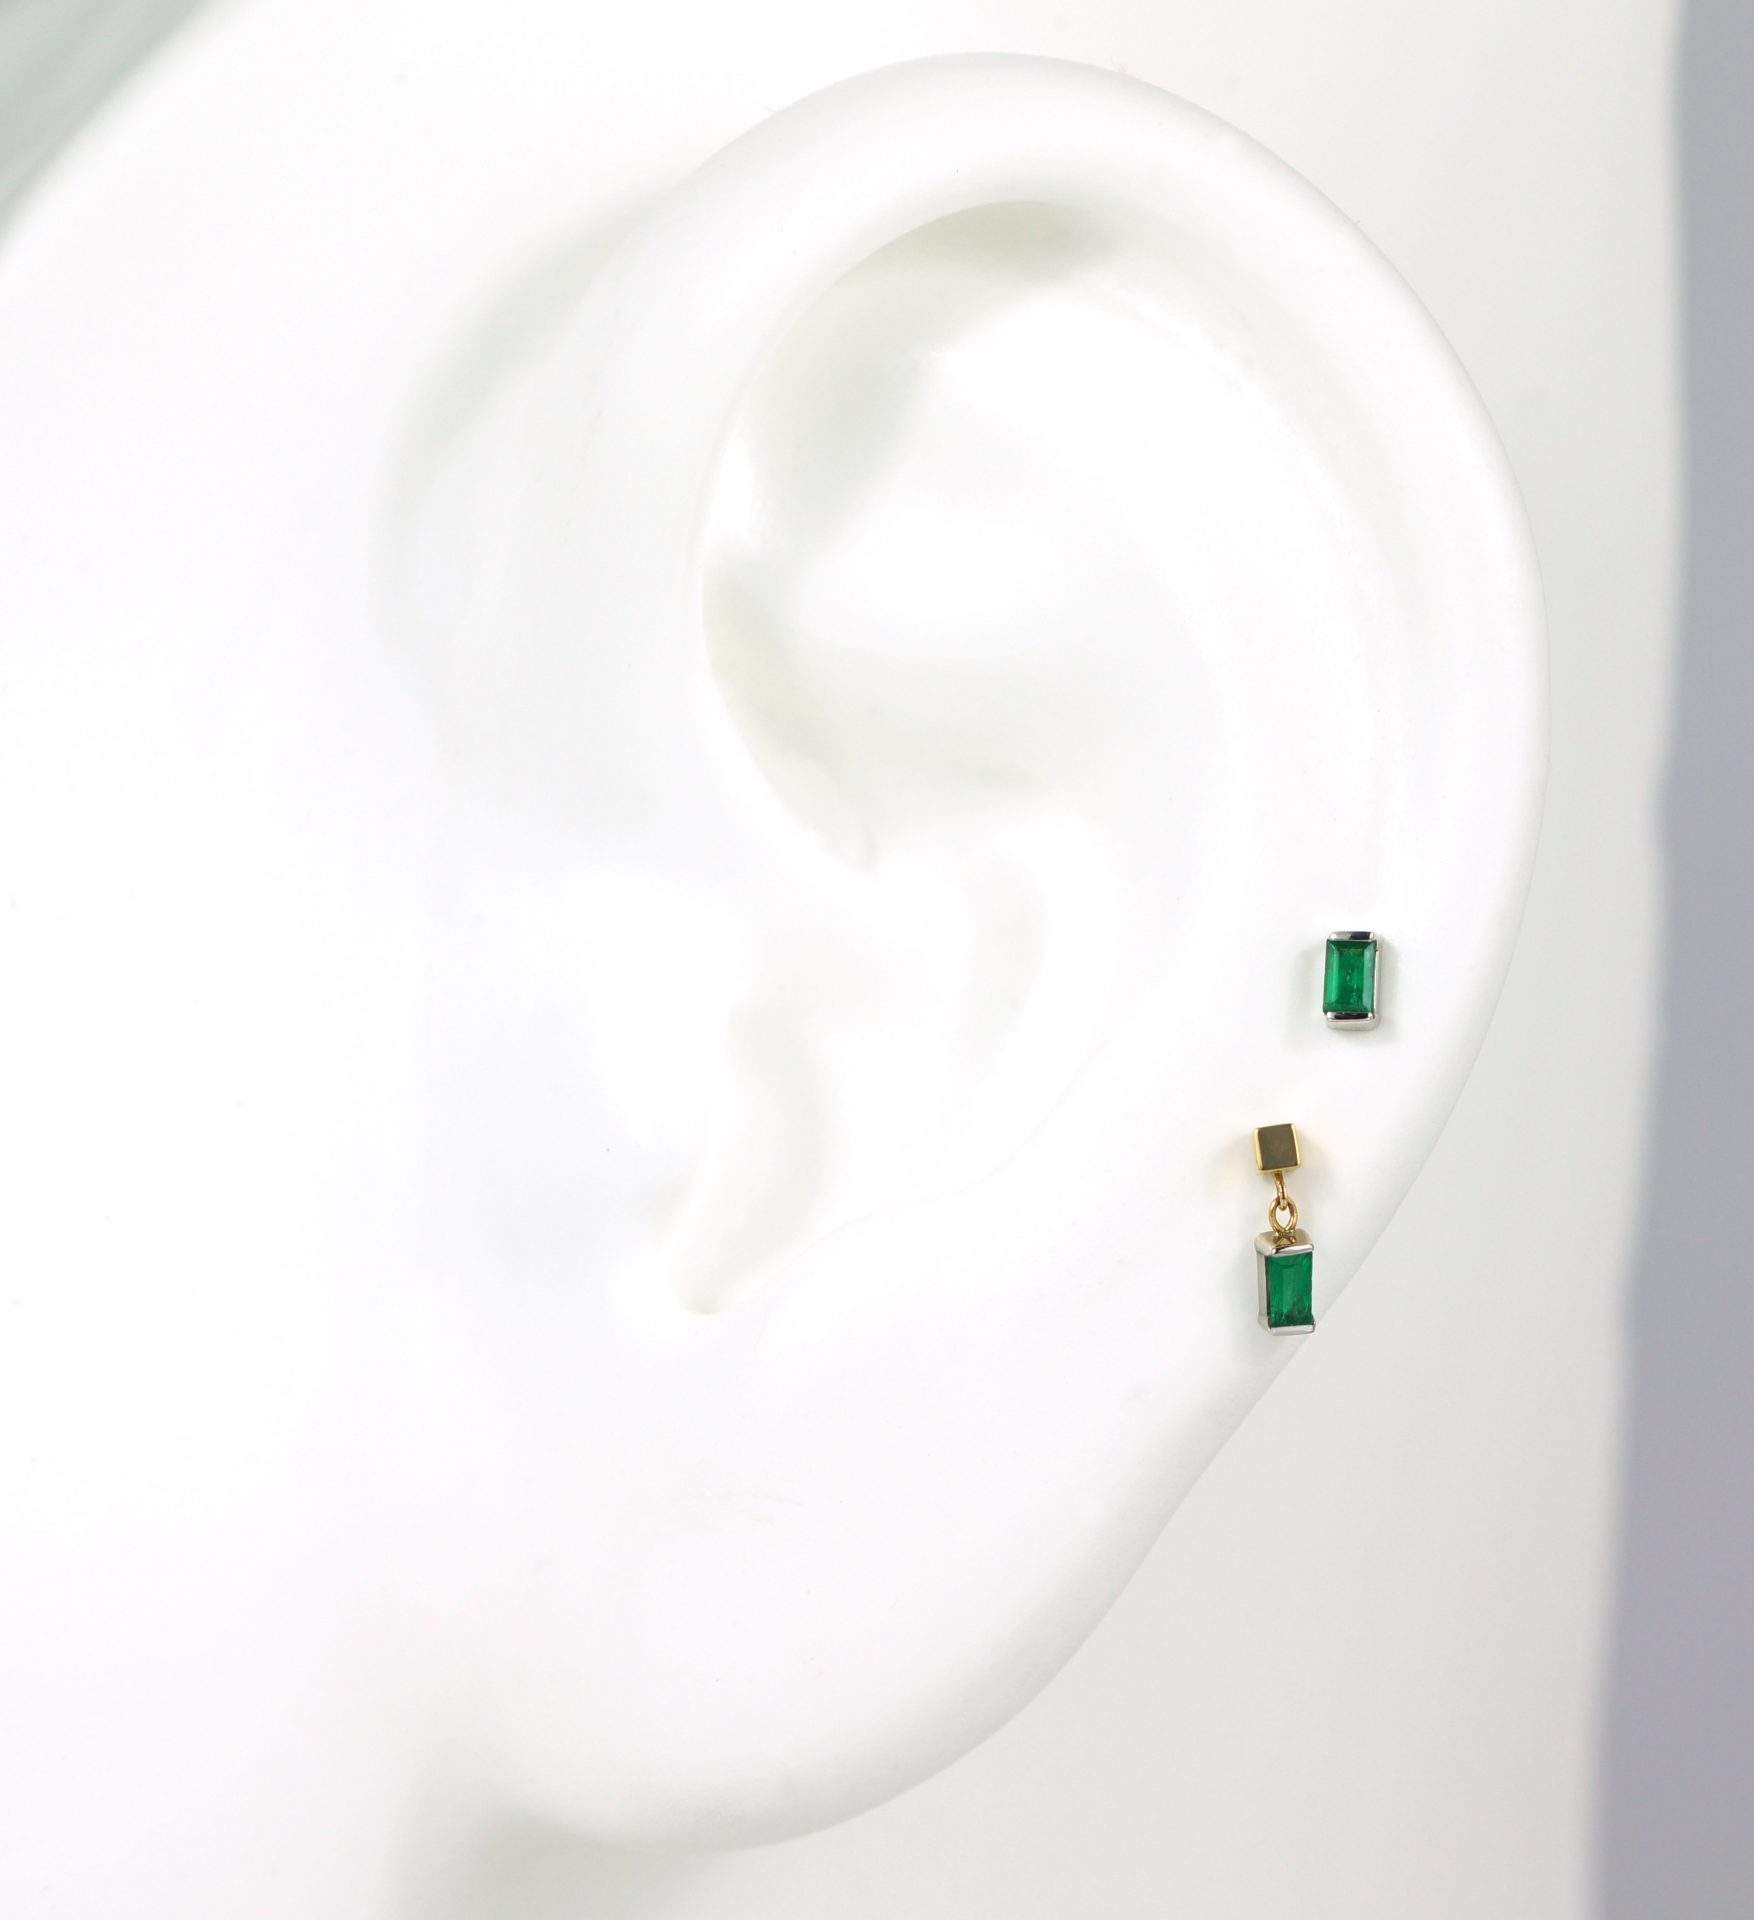 Luxury-Piercing-Set-Multi-Buy-Option18k-White-Gold-Emerald-Baguette–Minimalist-Piercing-Diamond-Stud-Lena-Cohen